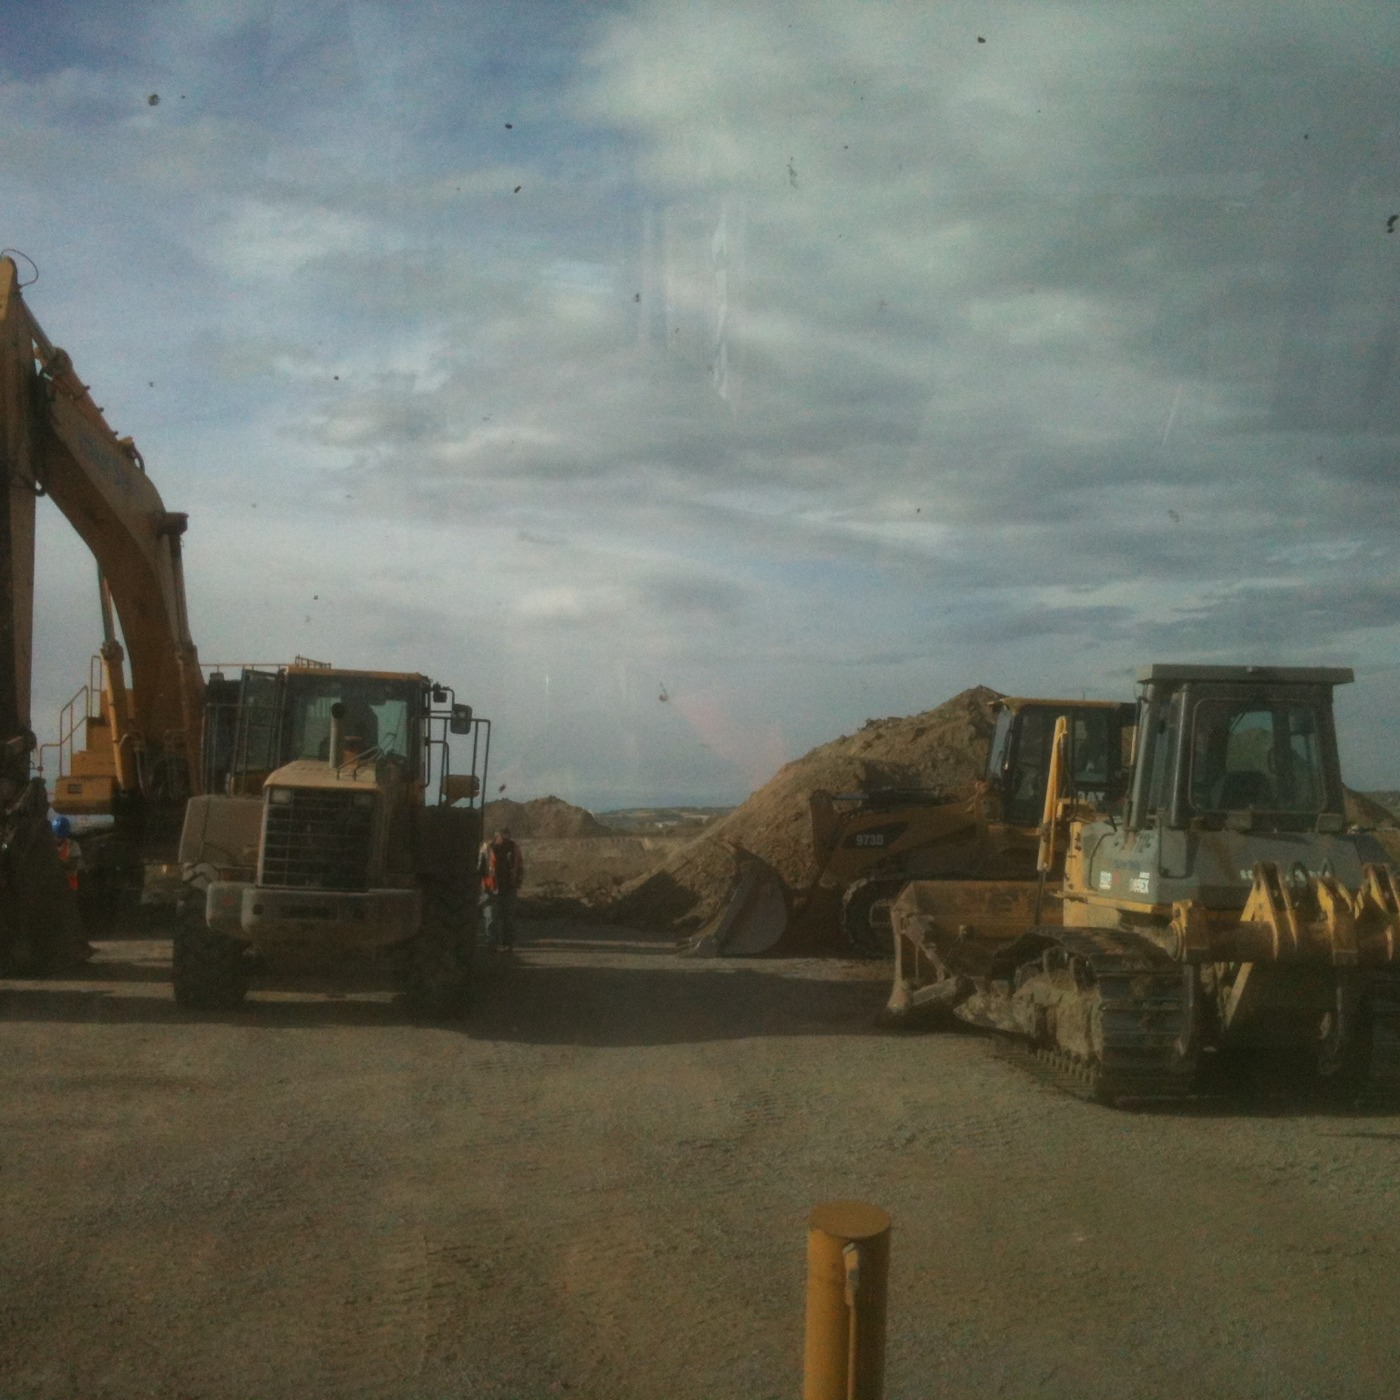 The Heavy Equipment Radio Podcast